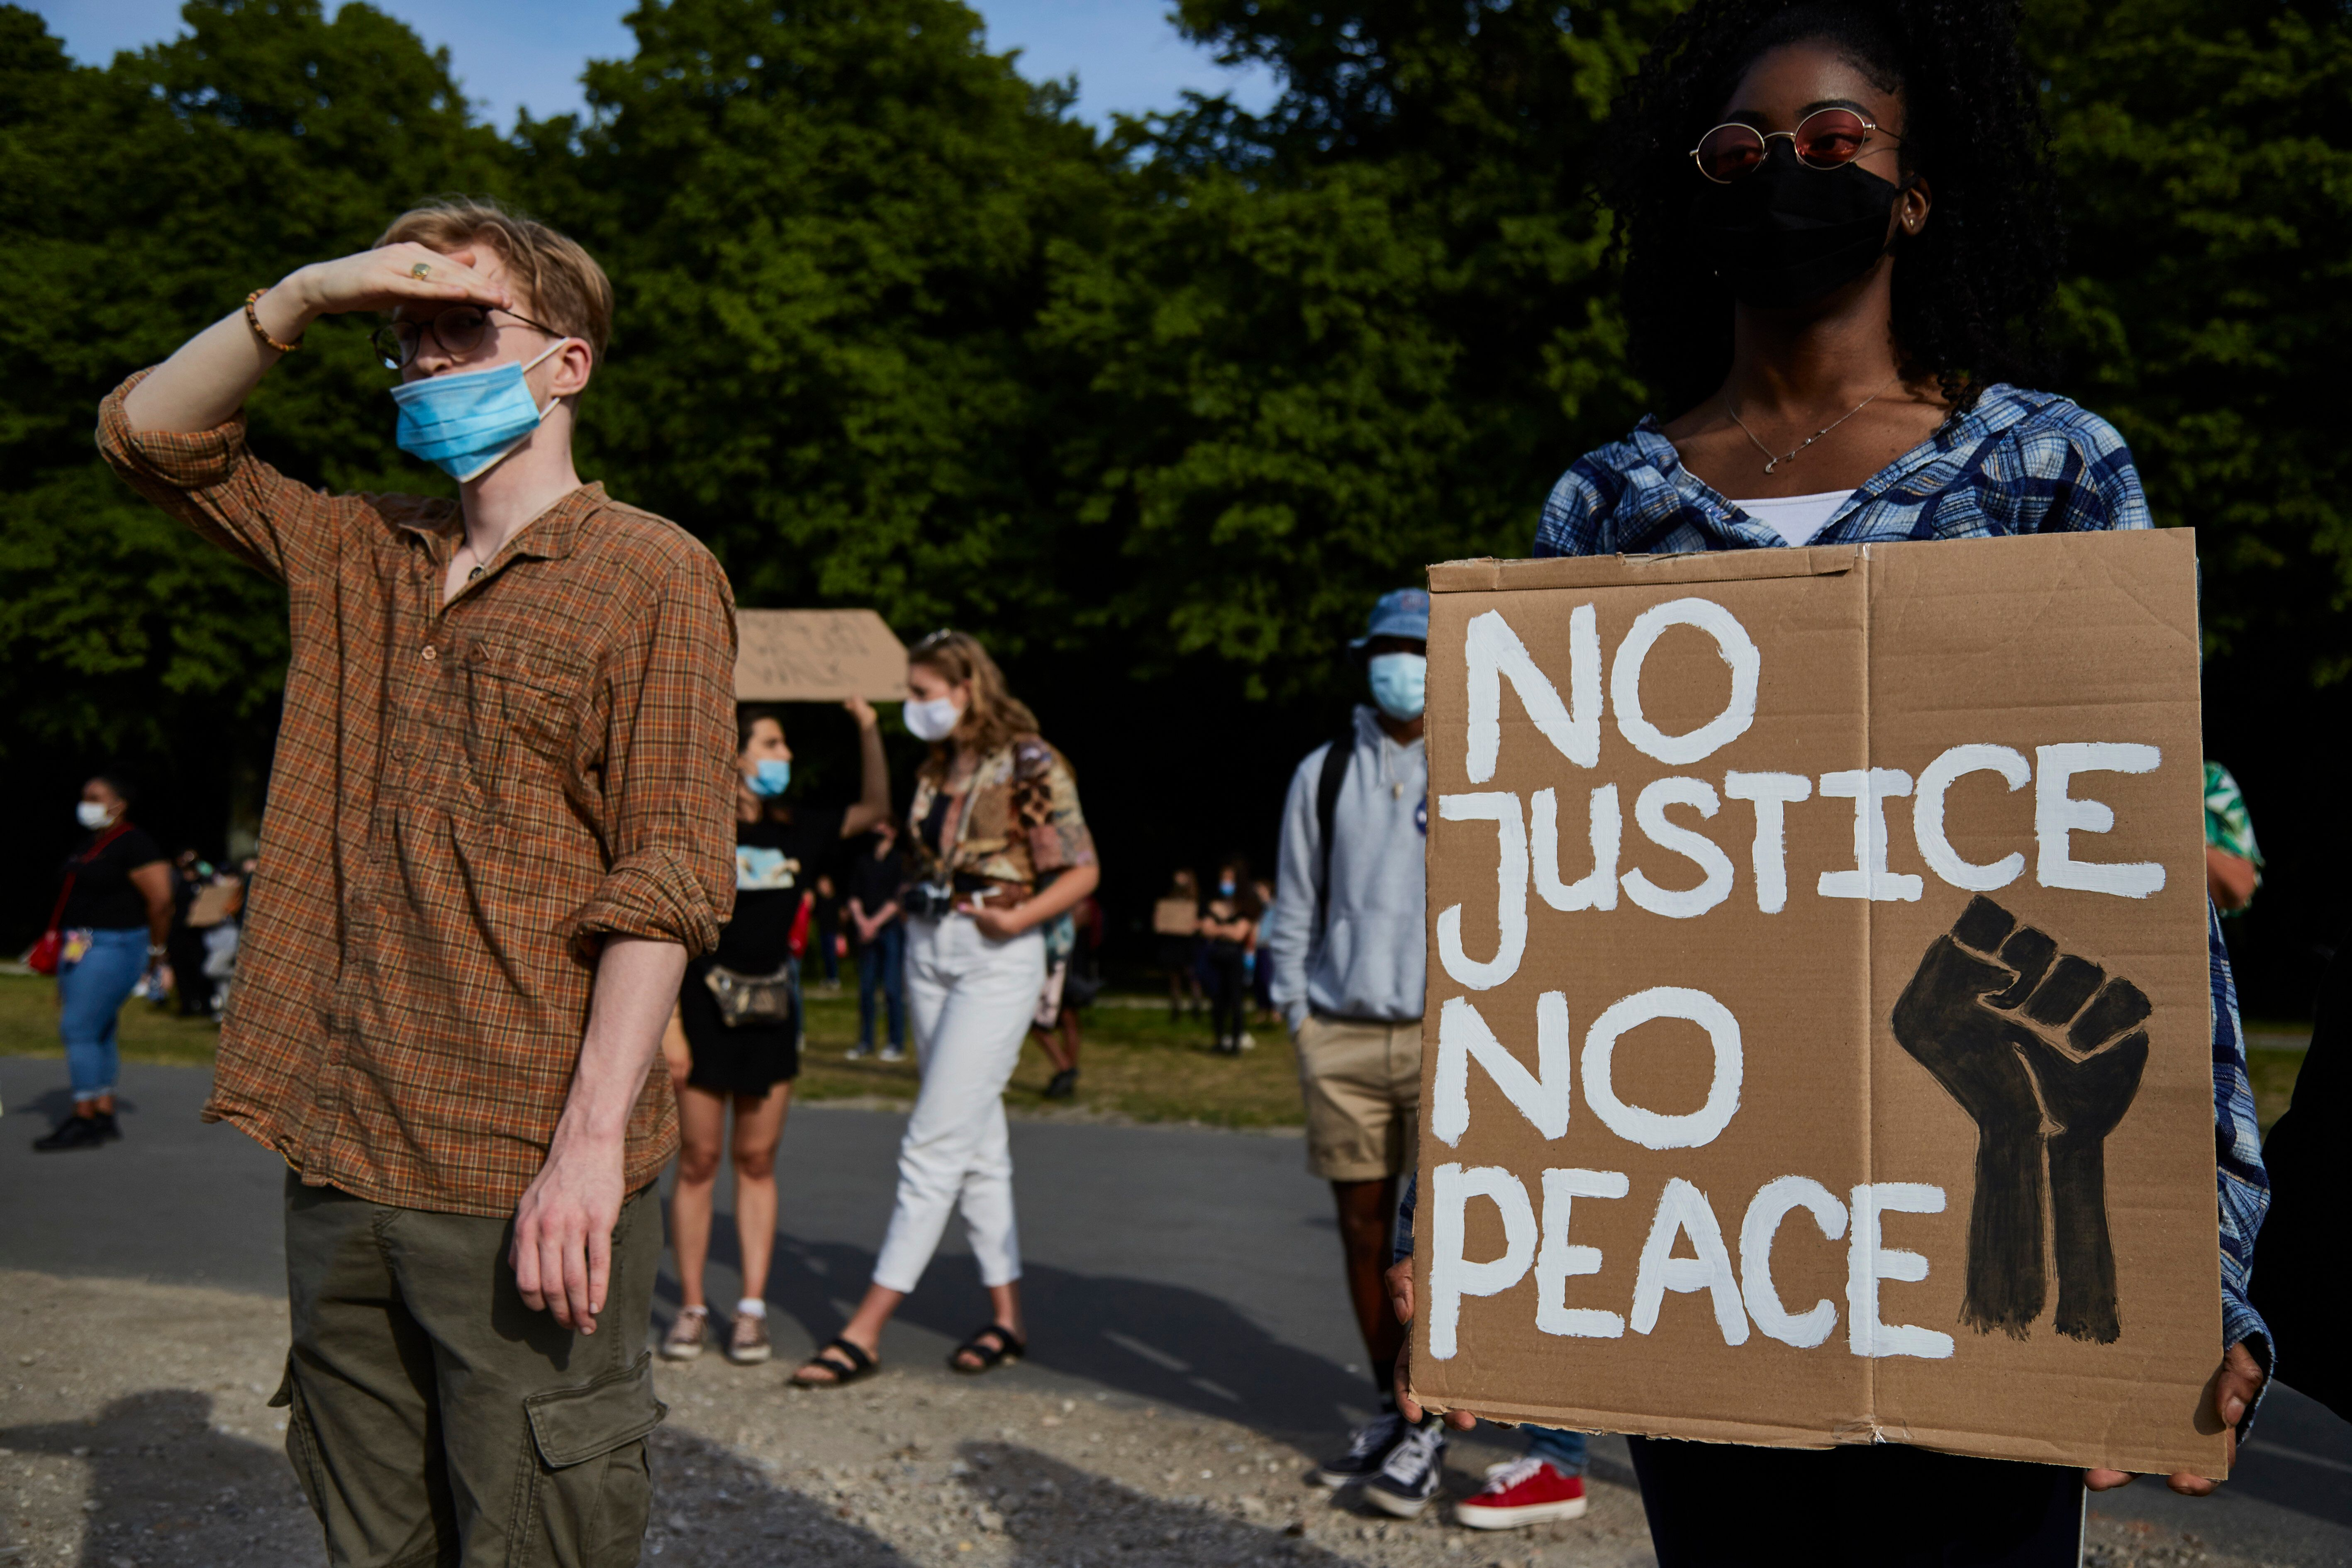 The unrest in the U.S. following the death of George Floyd at the hands of Minneapolis police officers has spurred solidarity